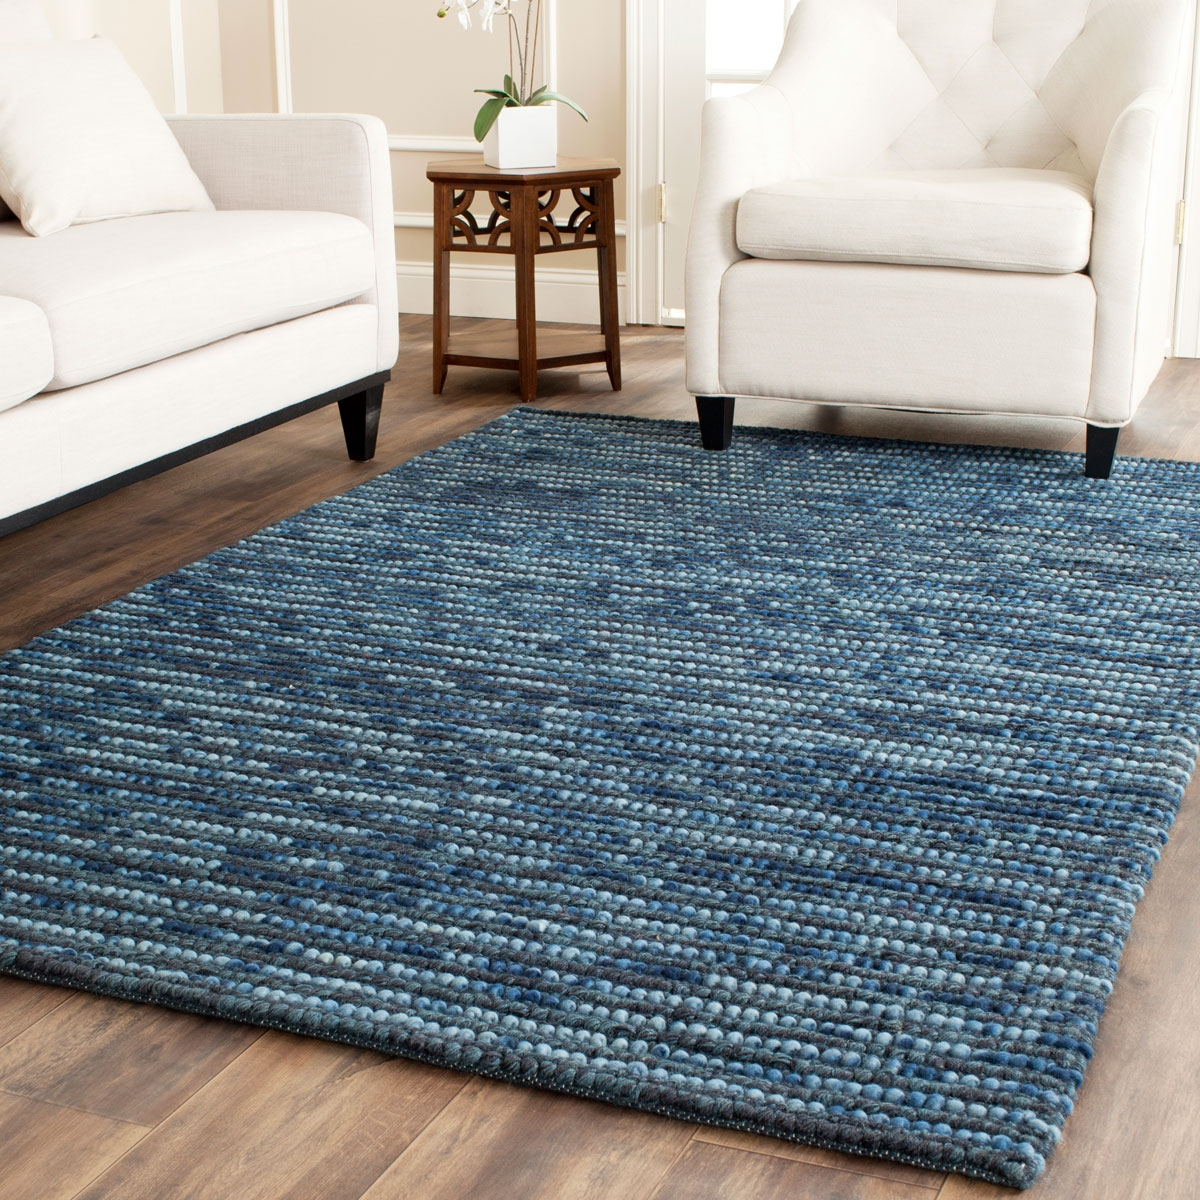 Rug Boh525g Bohemian Area Rugs Safavieh Throughout Wool Blue Rugs (Image 10 of 15)